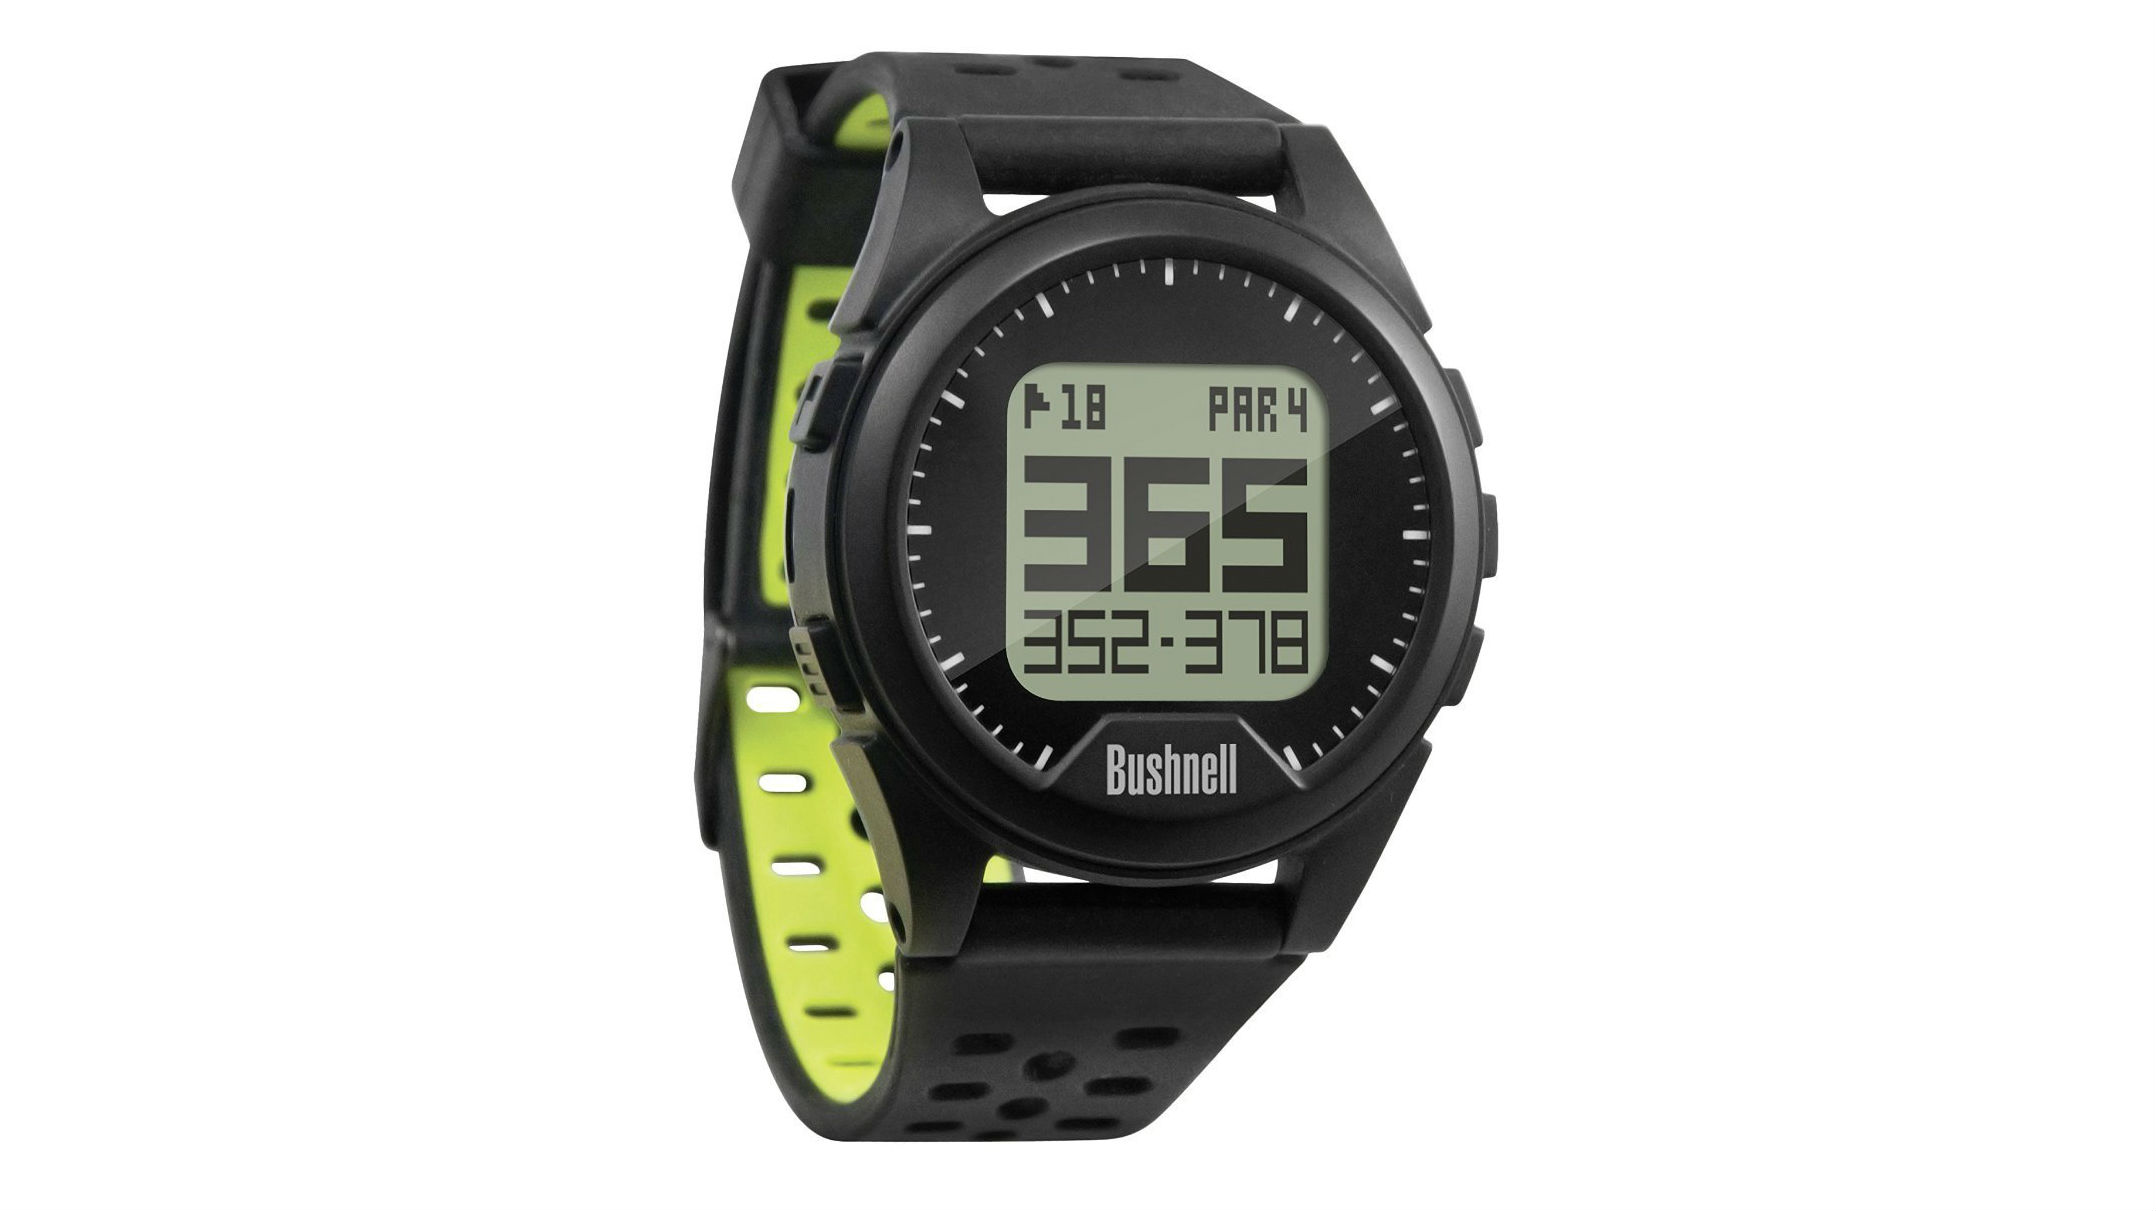 Bushnell Have Been The Gold Standard For Laser Powered Rangefinders For Years But Now Theyre Branching Out With This Their Neo Ion Gps Watch